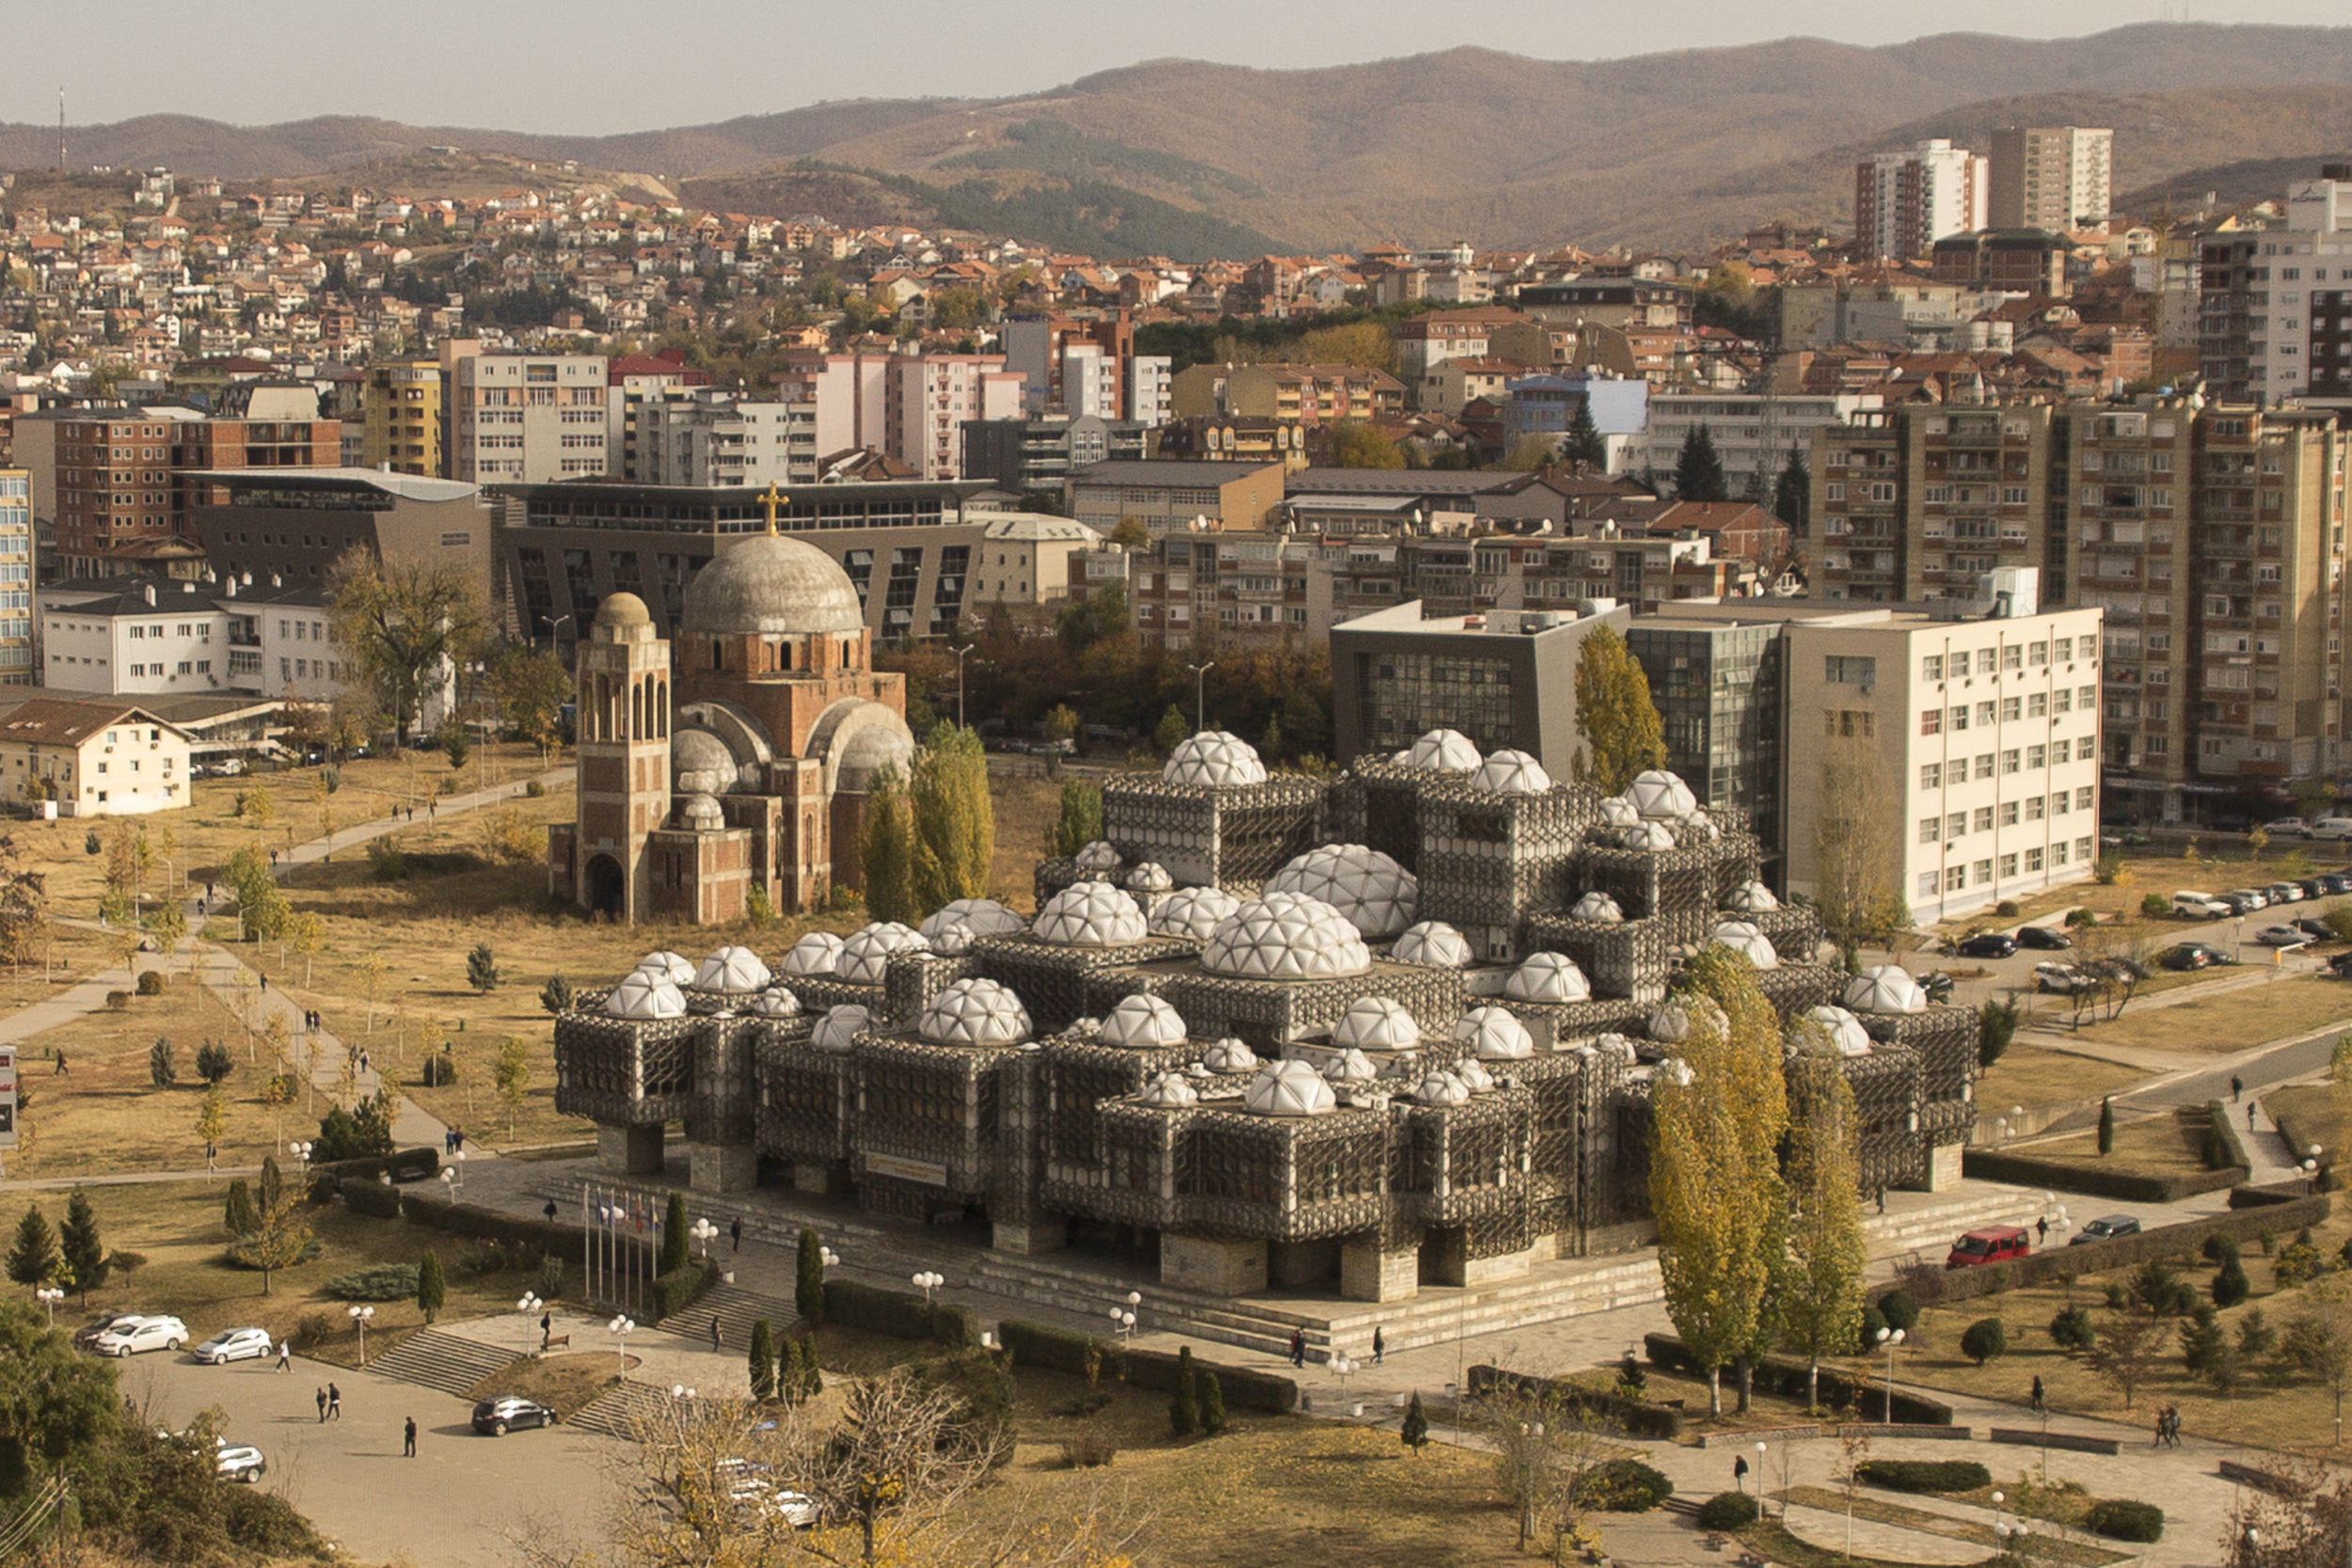 The Library of Pristina